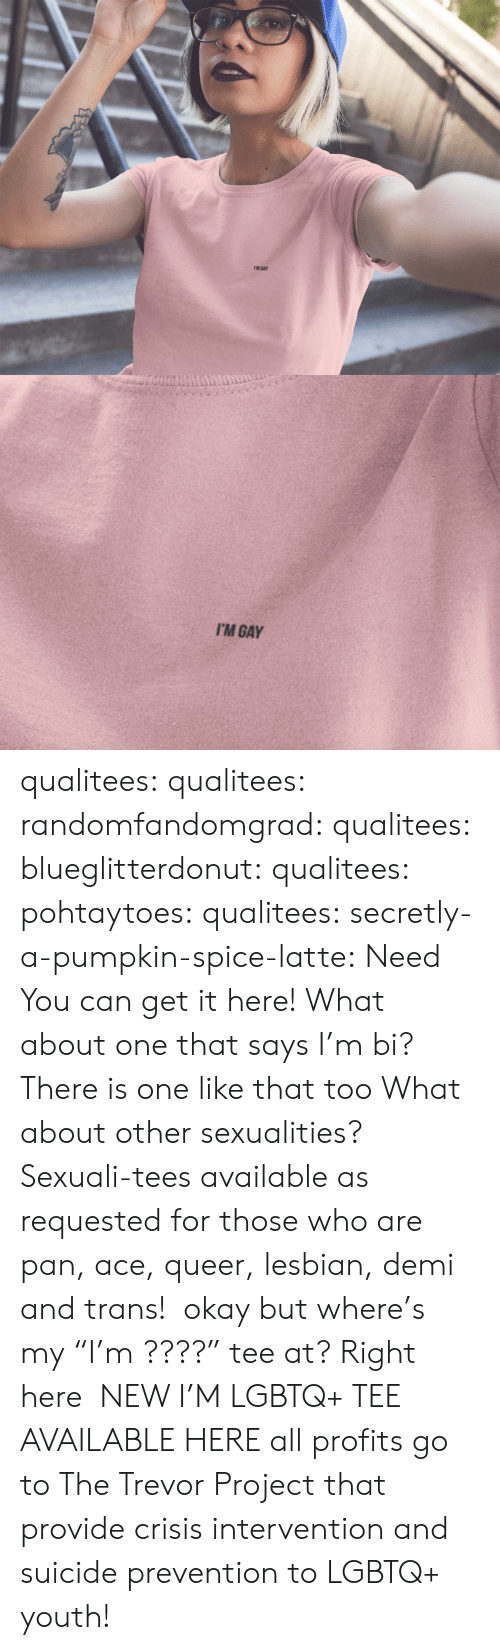 """Tumblr, Blog, and Http: I'M GAY   I'M GAY qualitees: qualitees:  randomfandomgrad:  qualitees:  blueglitterdonut:  qualitees:   pohtaytoes:  qualitees:   secretly-a-pumpkin-spice-latte: Need You can get it here!   What about one that says I'm bi?  There is one like that too   What about other sexualities?  Sexuali-tees available as requested for those who are pan, ace,queer,lesbian, demi and trans!  okay but where's my""""I'm ????"""" tee at?  Right here  NEW I'M LGBTQ+ TEE AVAILABLE HEREall profits go to The Trevor Project that provide crisis intervention and suicide prevention to LGBTQ+ youth!"""